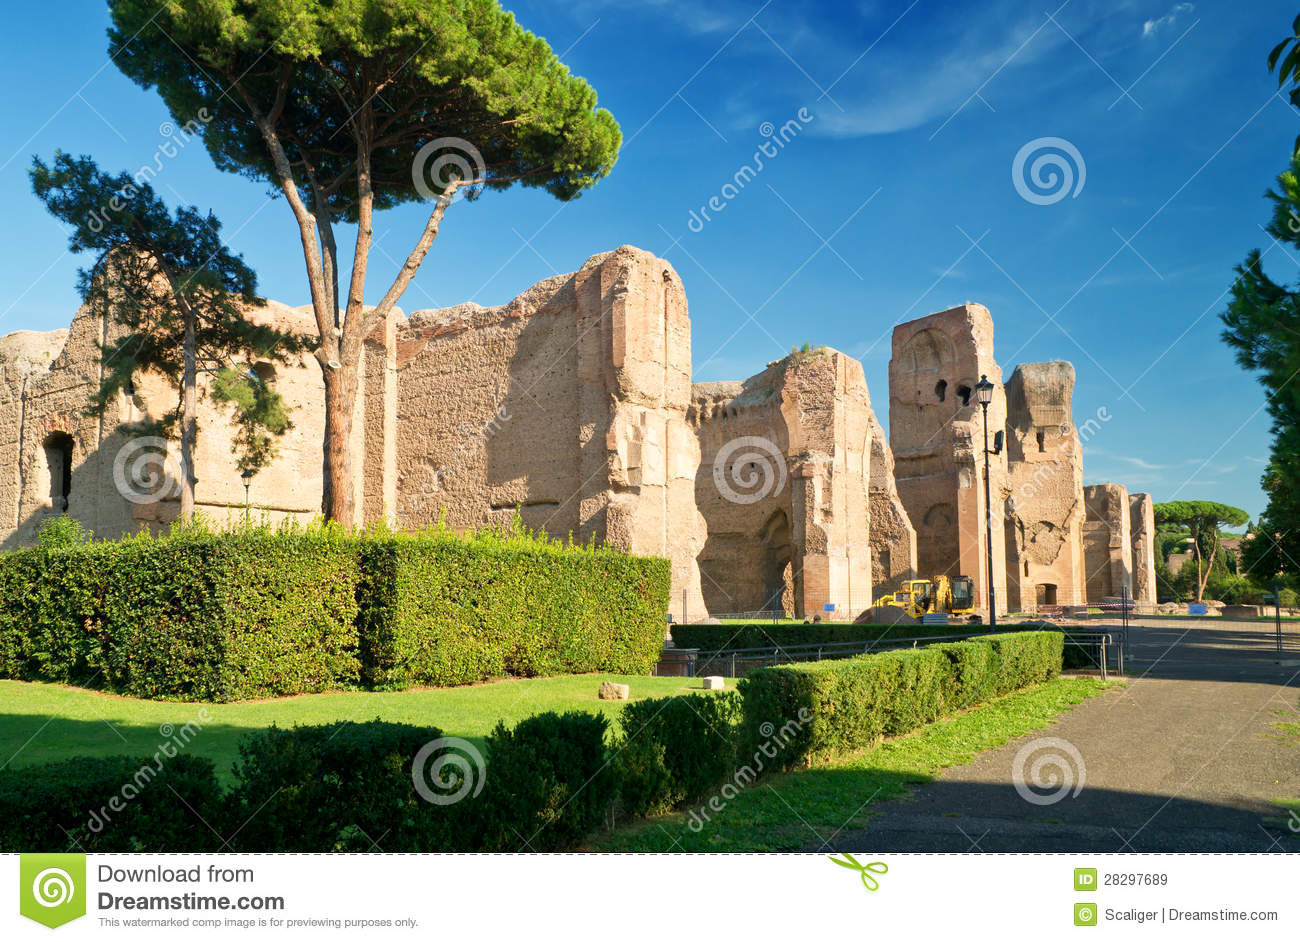 a look at rome and the famous monument the baths of caracalla Not far from the circus maximus and the colosseum, at the foot of the aventine hill, the baths of caracalla are one of the largest and most fascinating monumental.